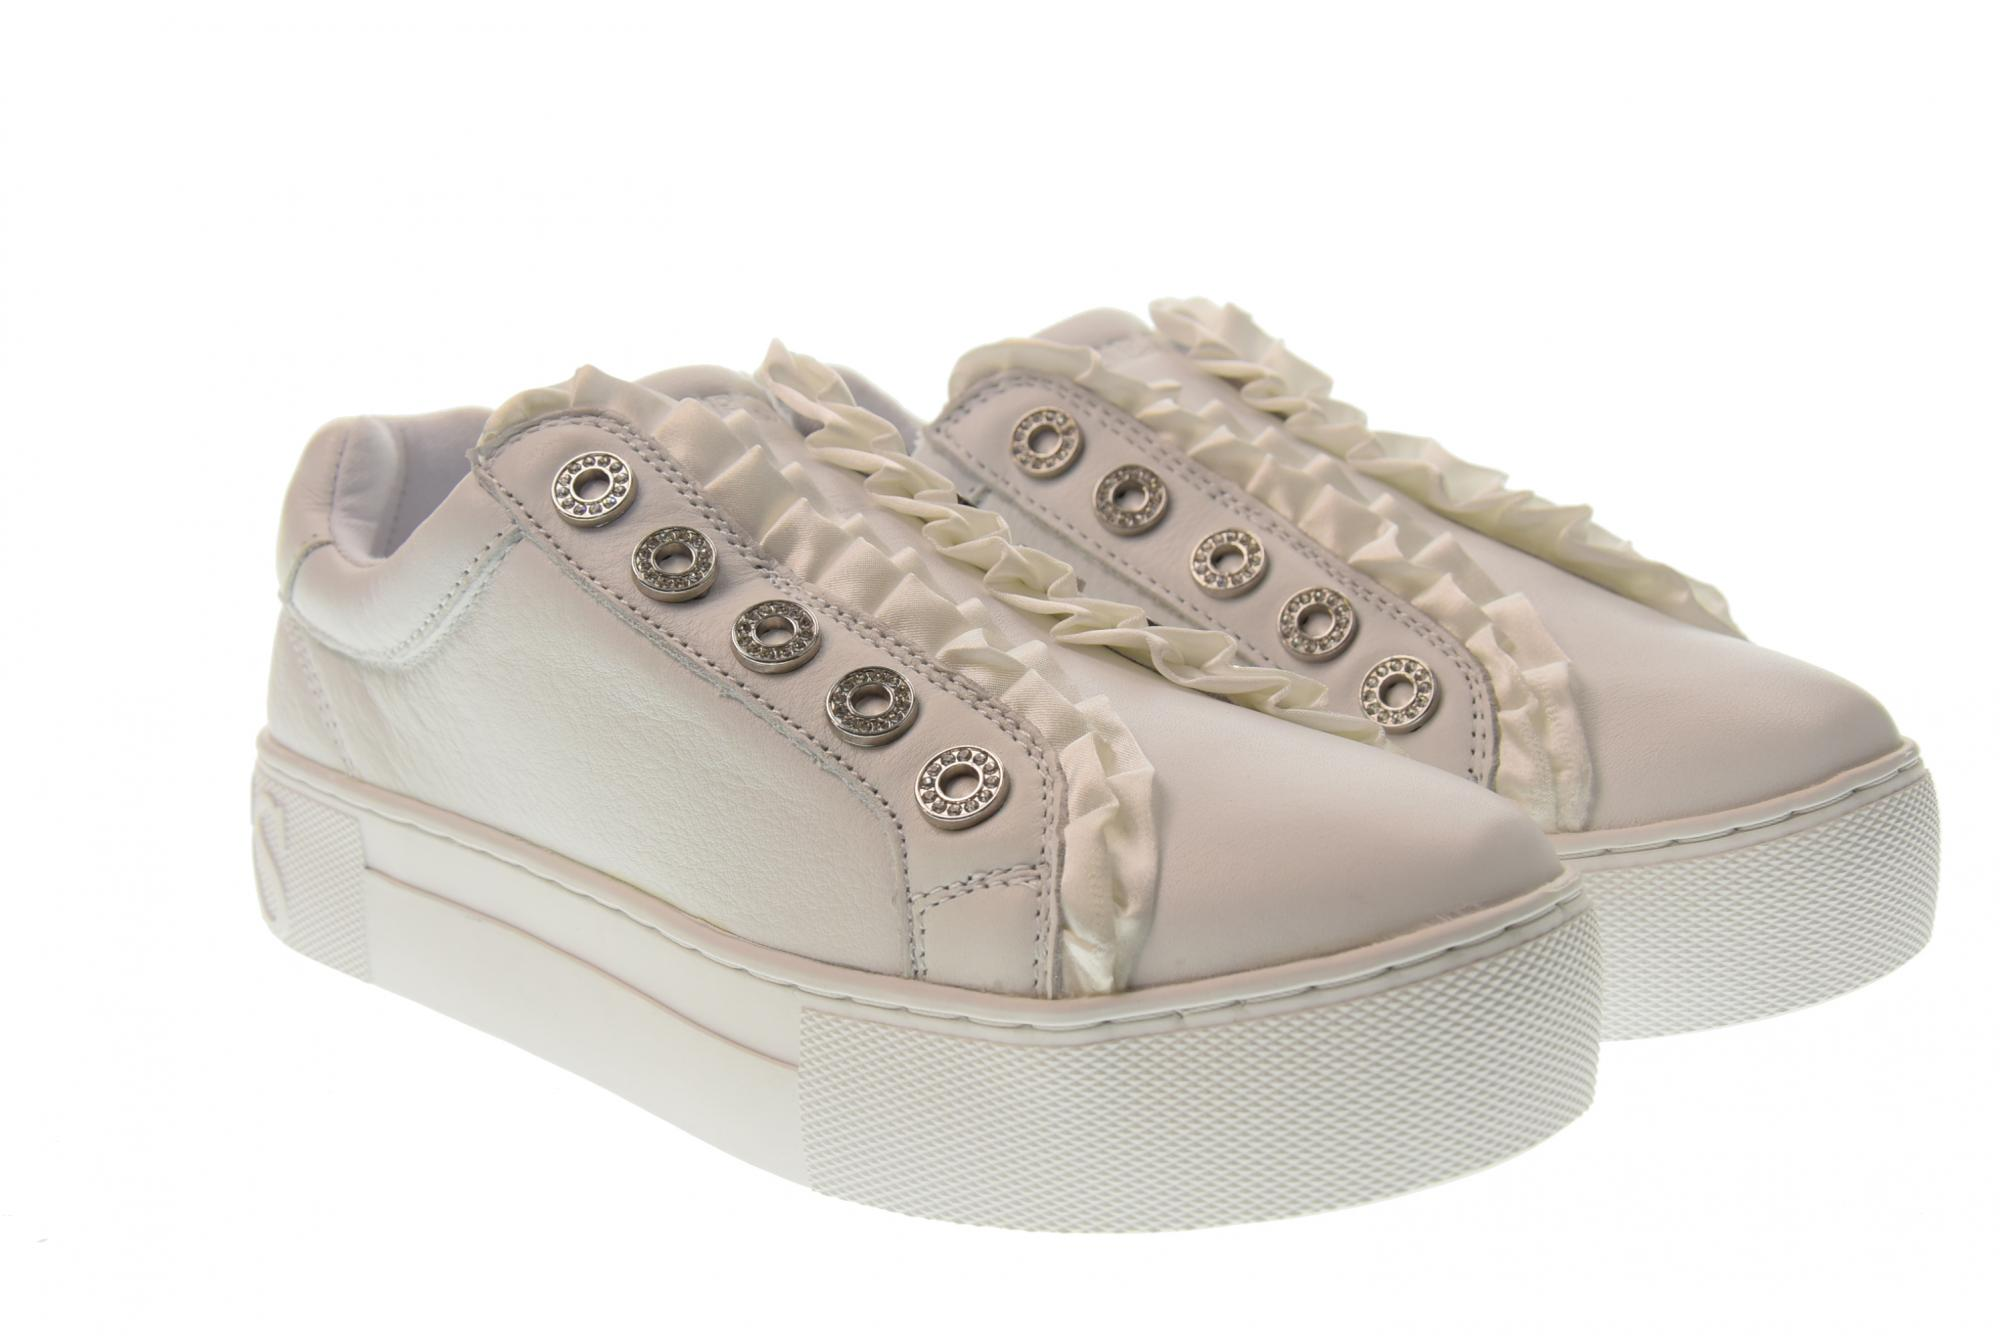 Guess Chaussures Femme